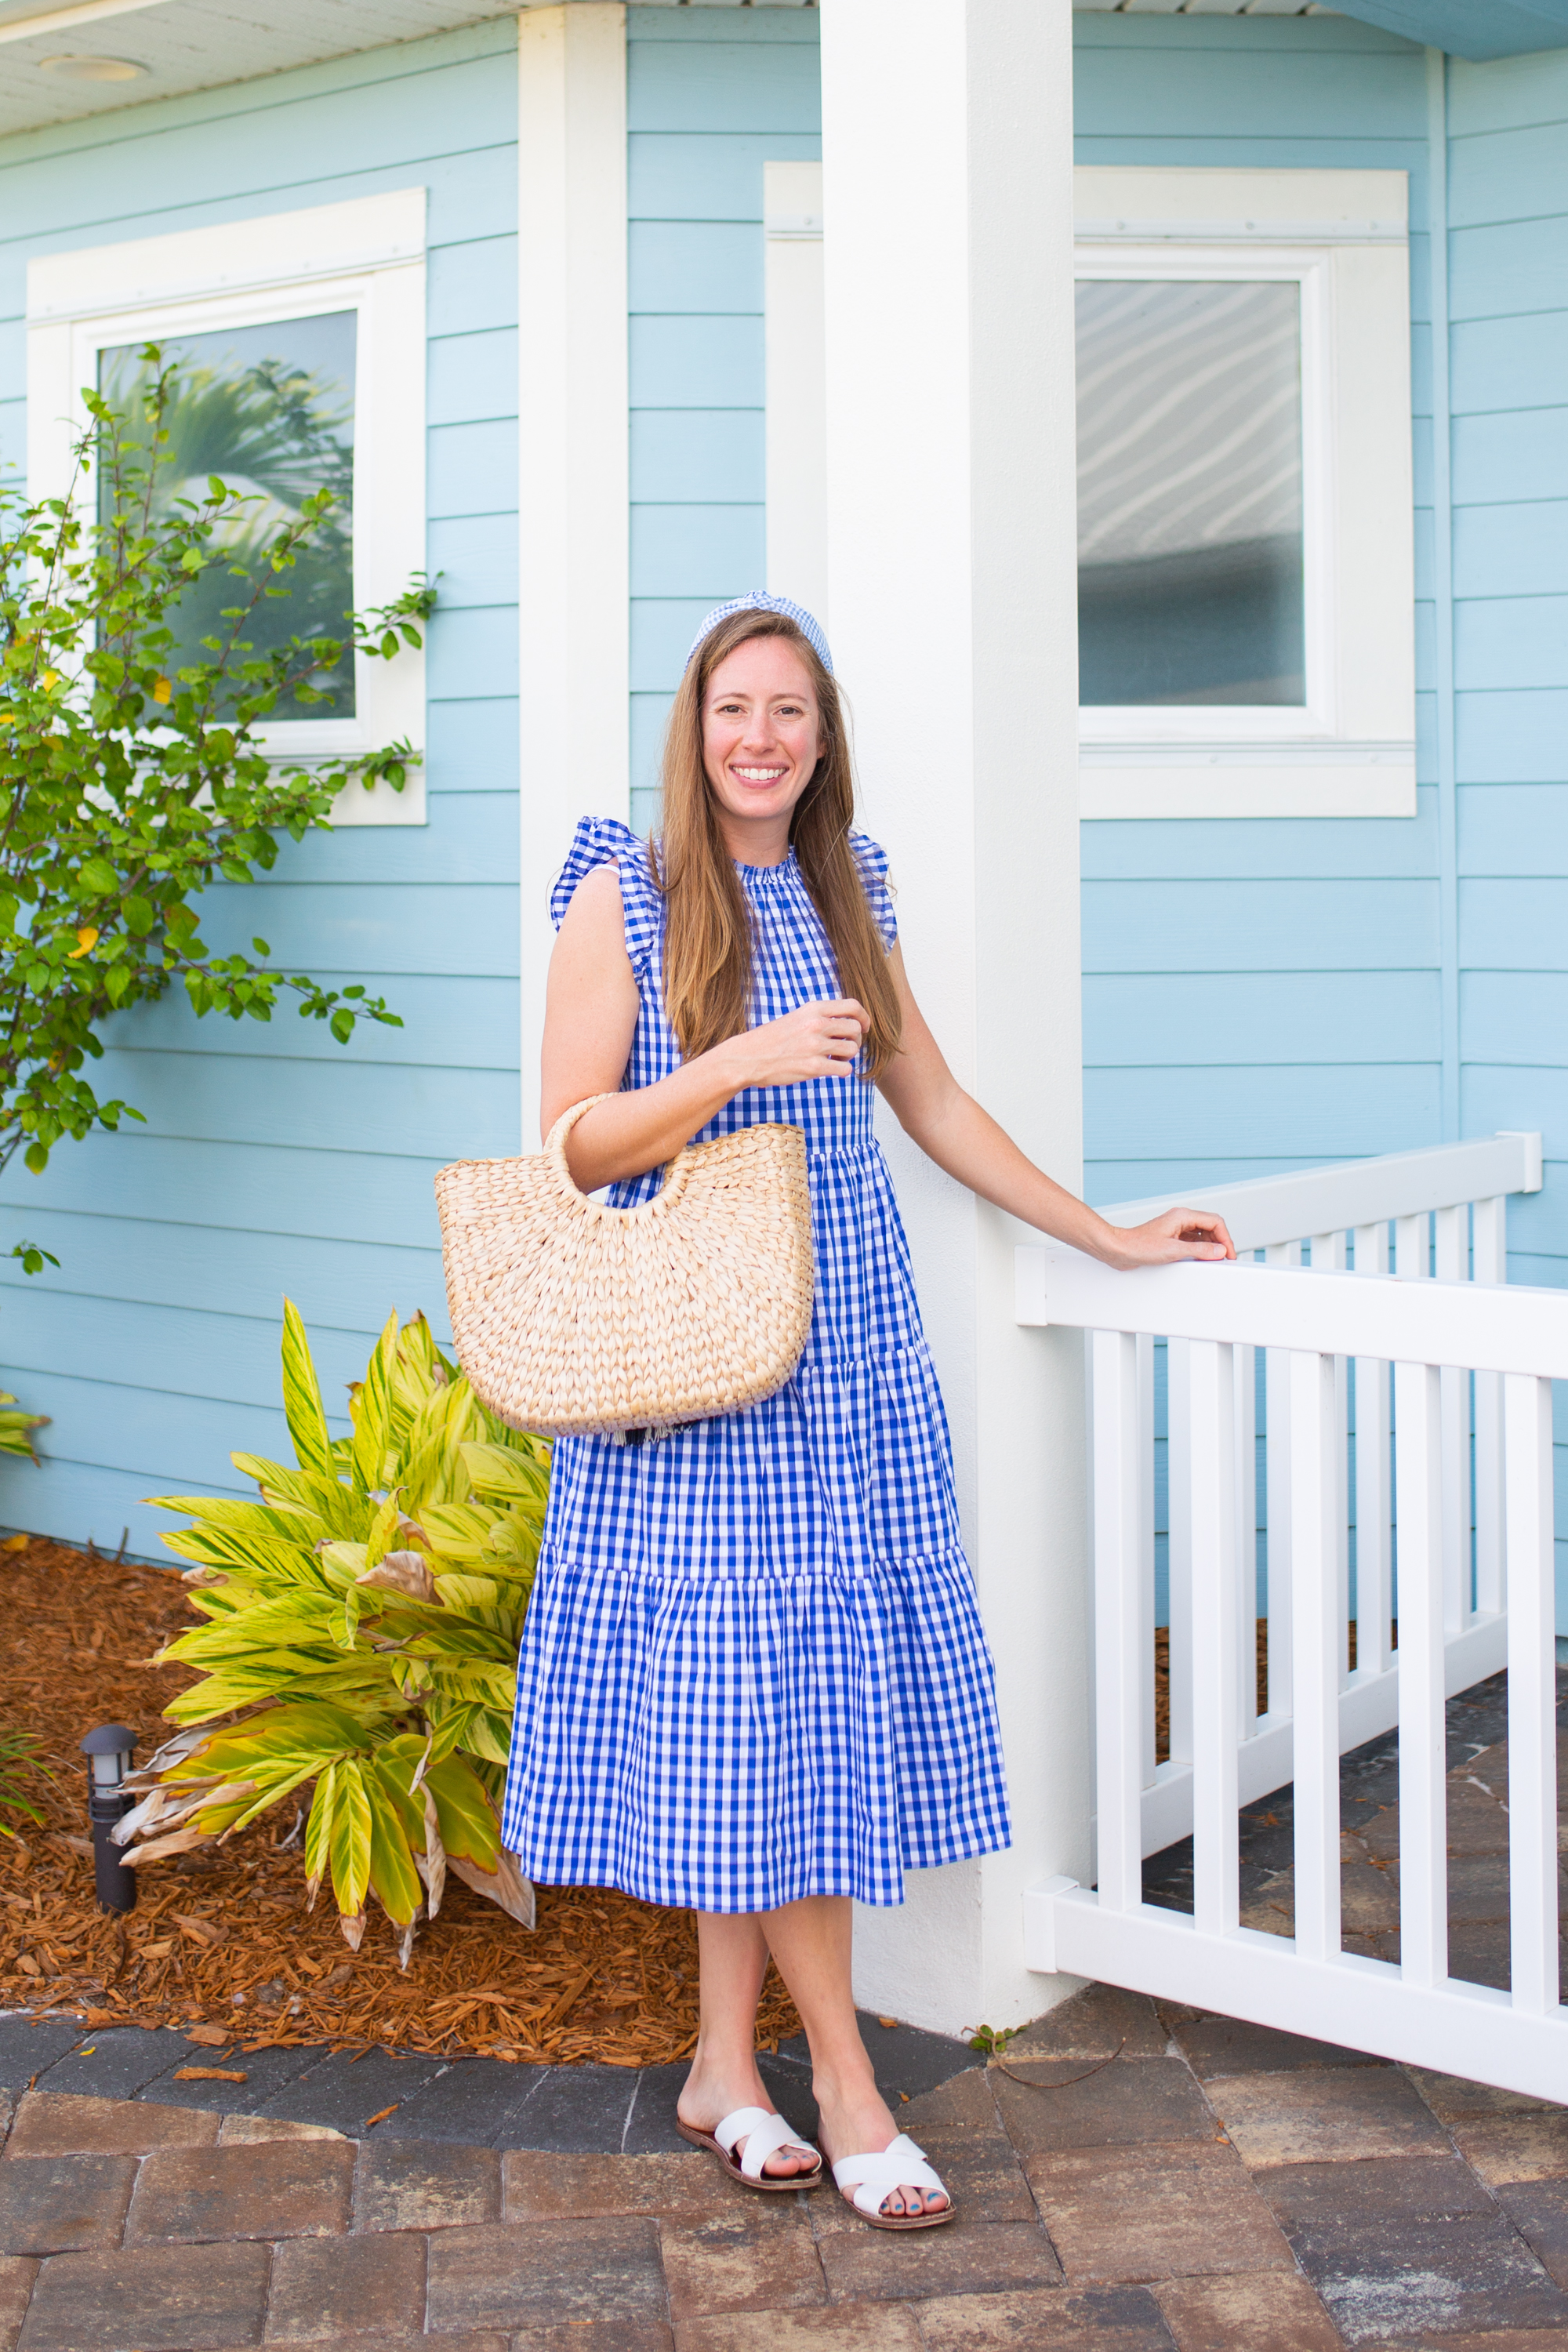 woman standing outside a blue house and wearing a blue dress